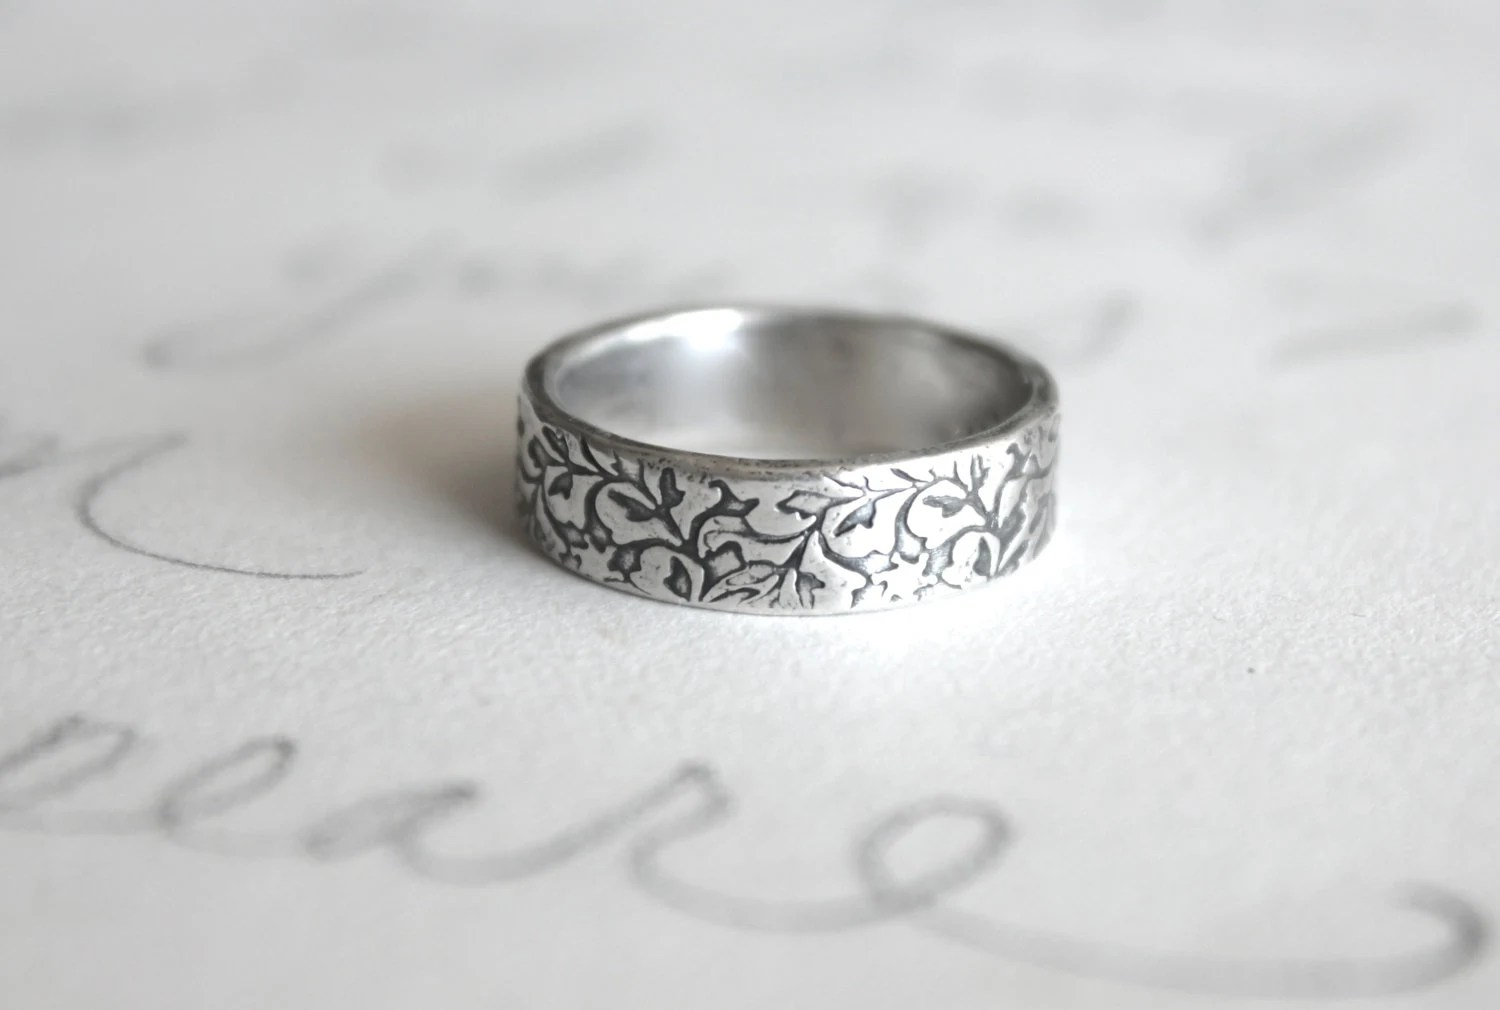 Unisex Wedding Band Ring Engraved Recycled Silver Ring